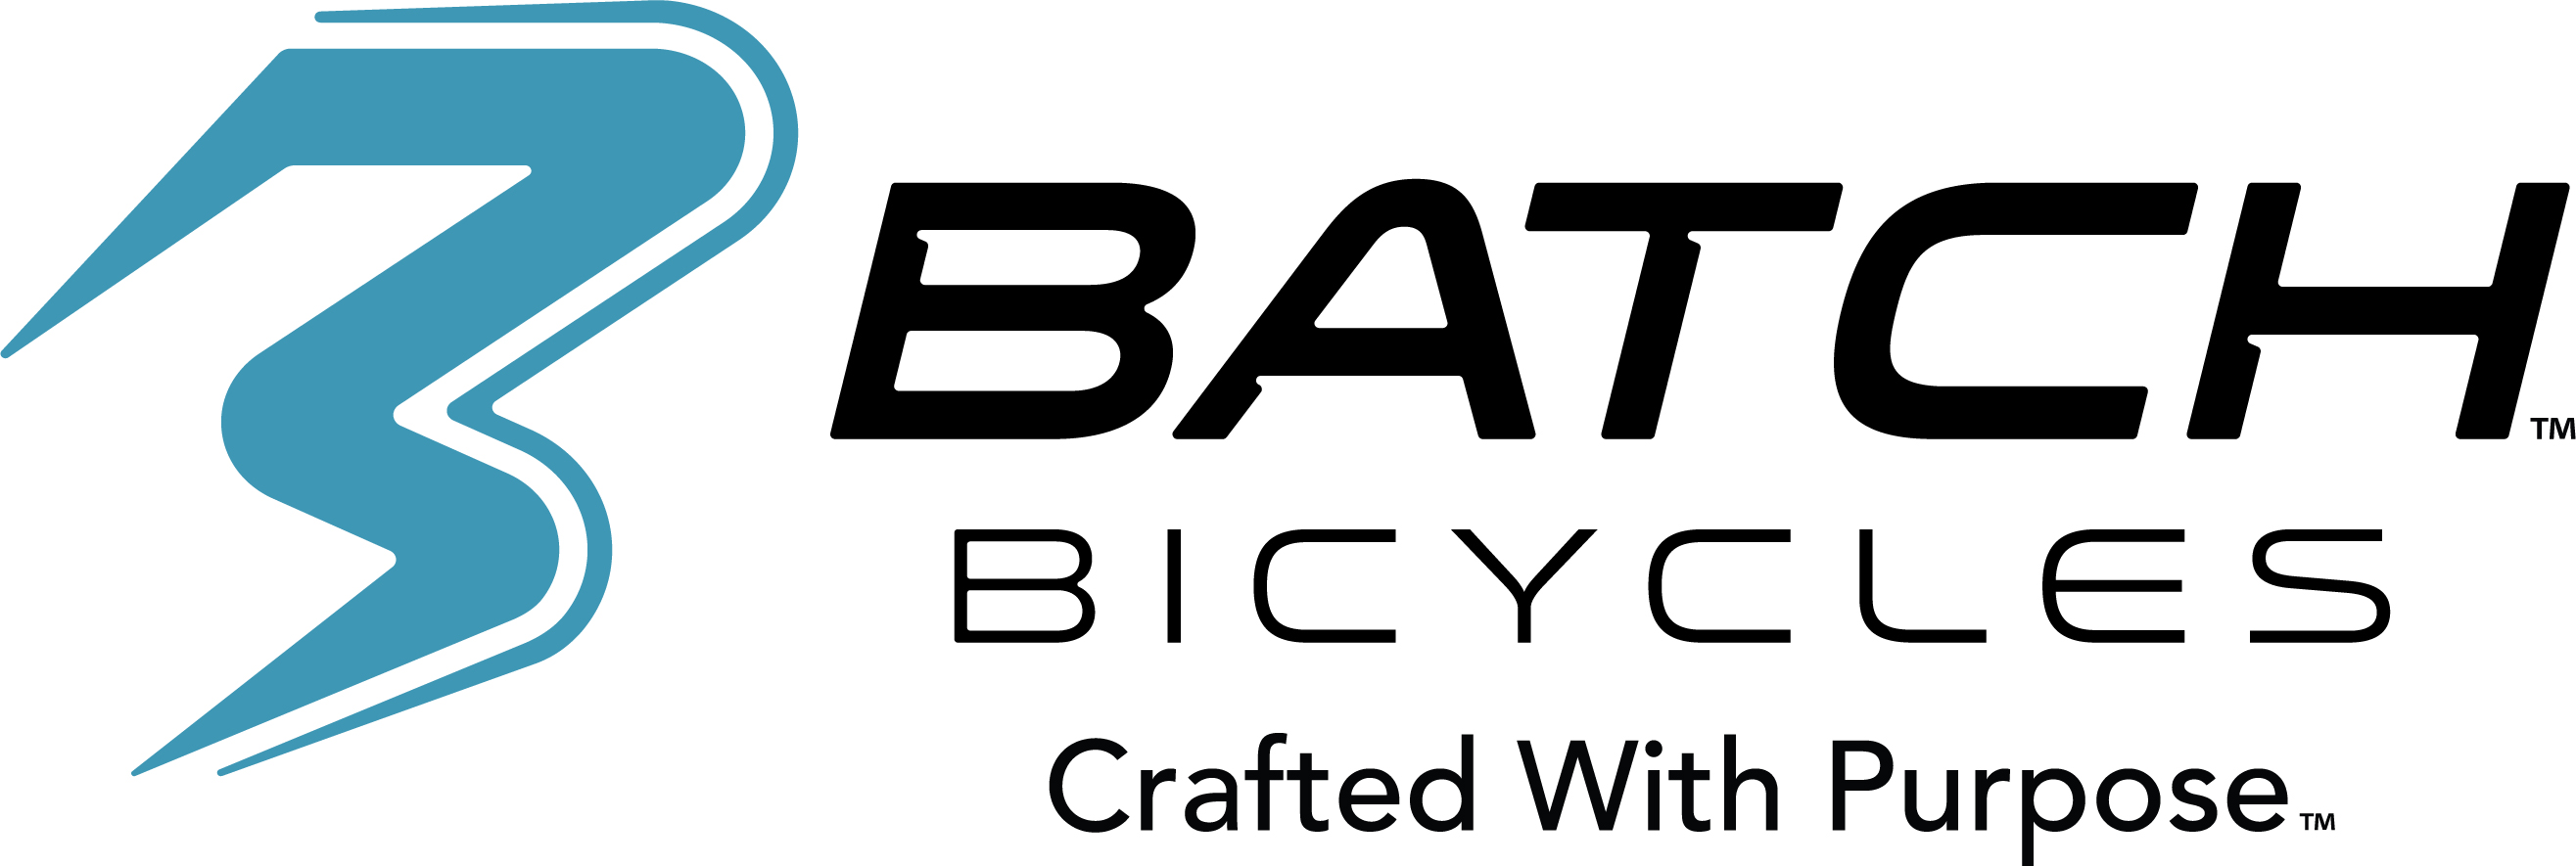 Batch Bicycles, bike shop, Gilbert, Mesa, Chandler, Higley, Ahwatukee, Queen Crek